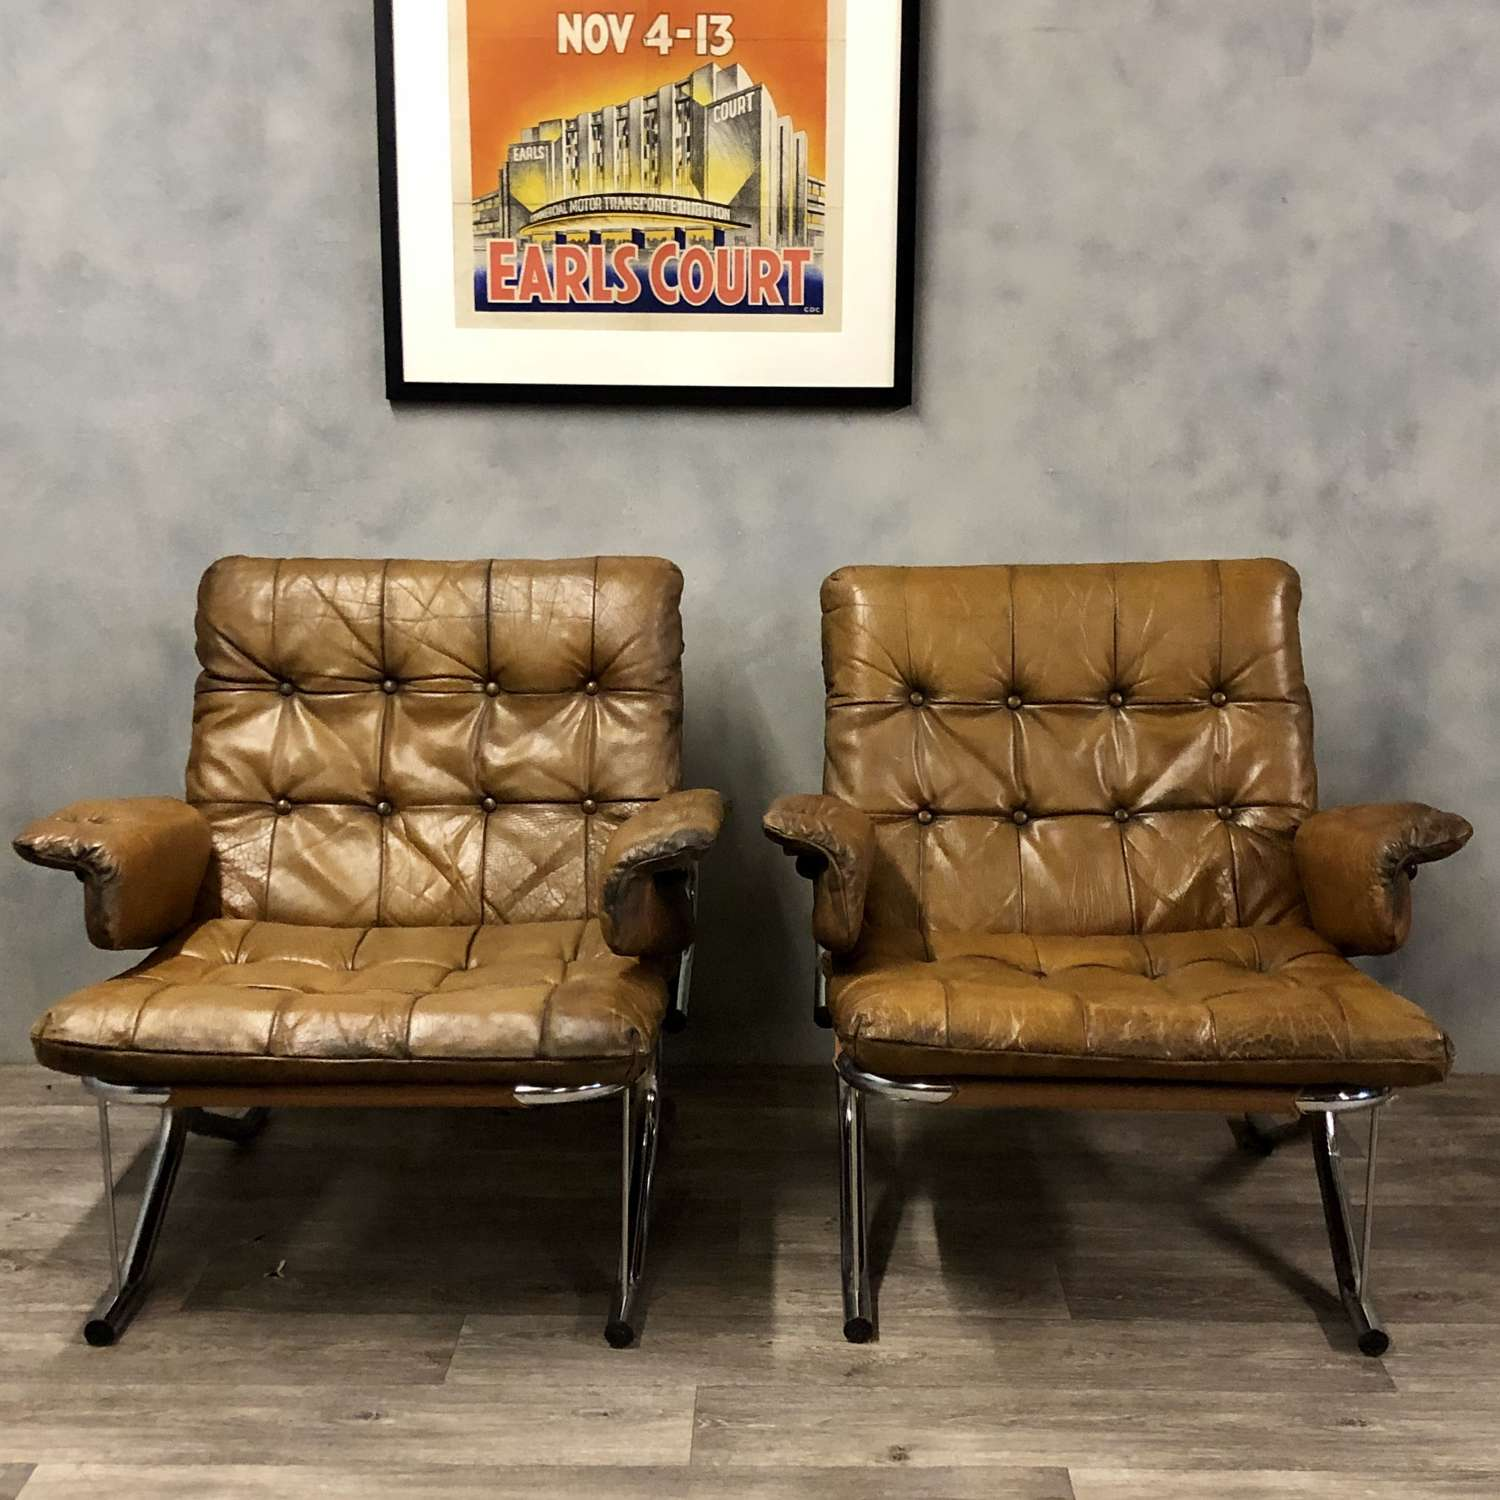 Midcentury lounge chairs in tan leather